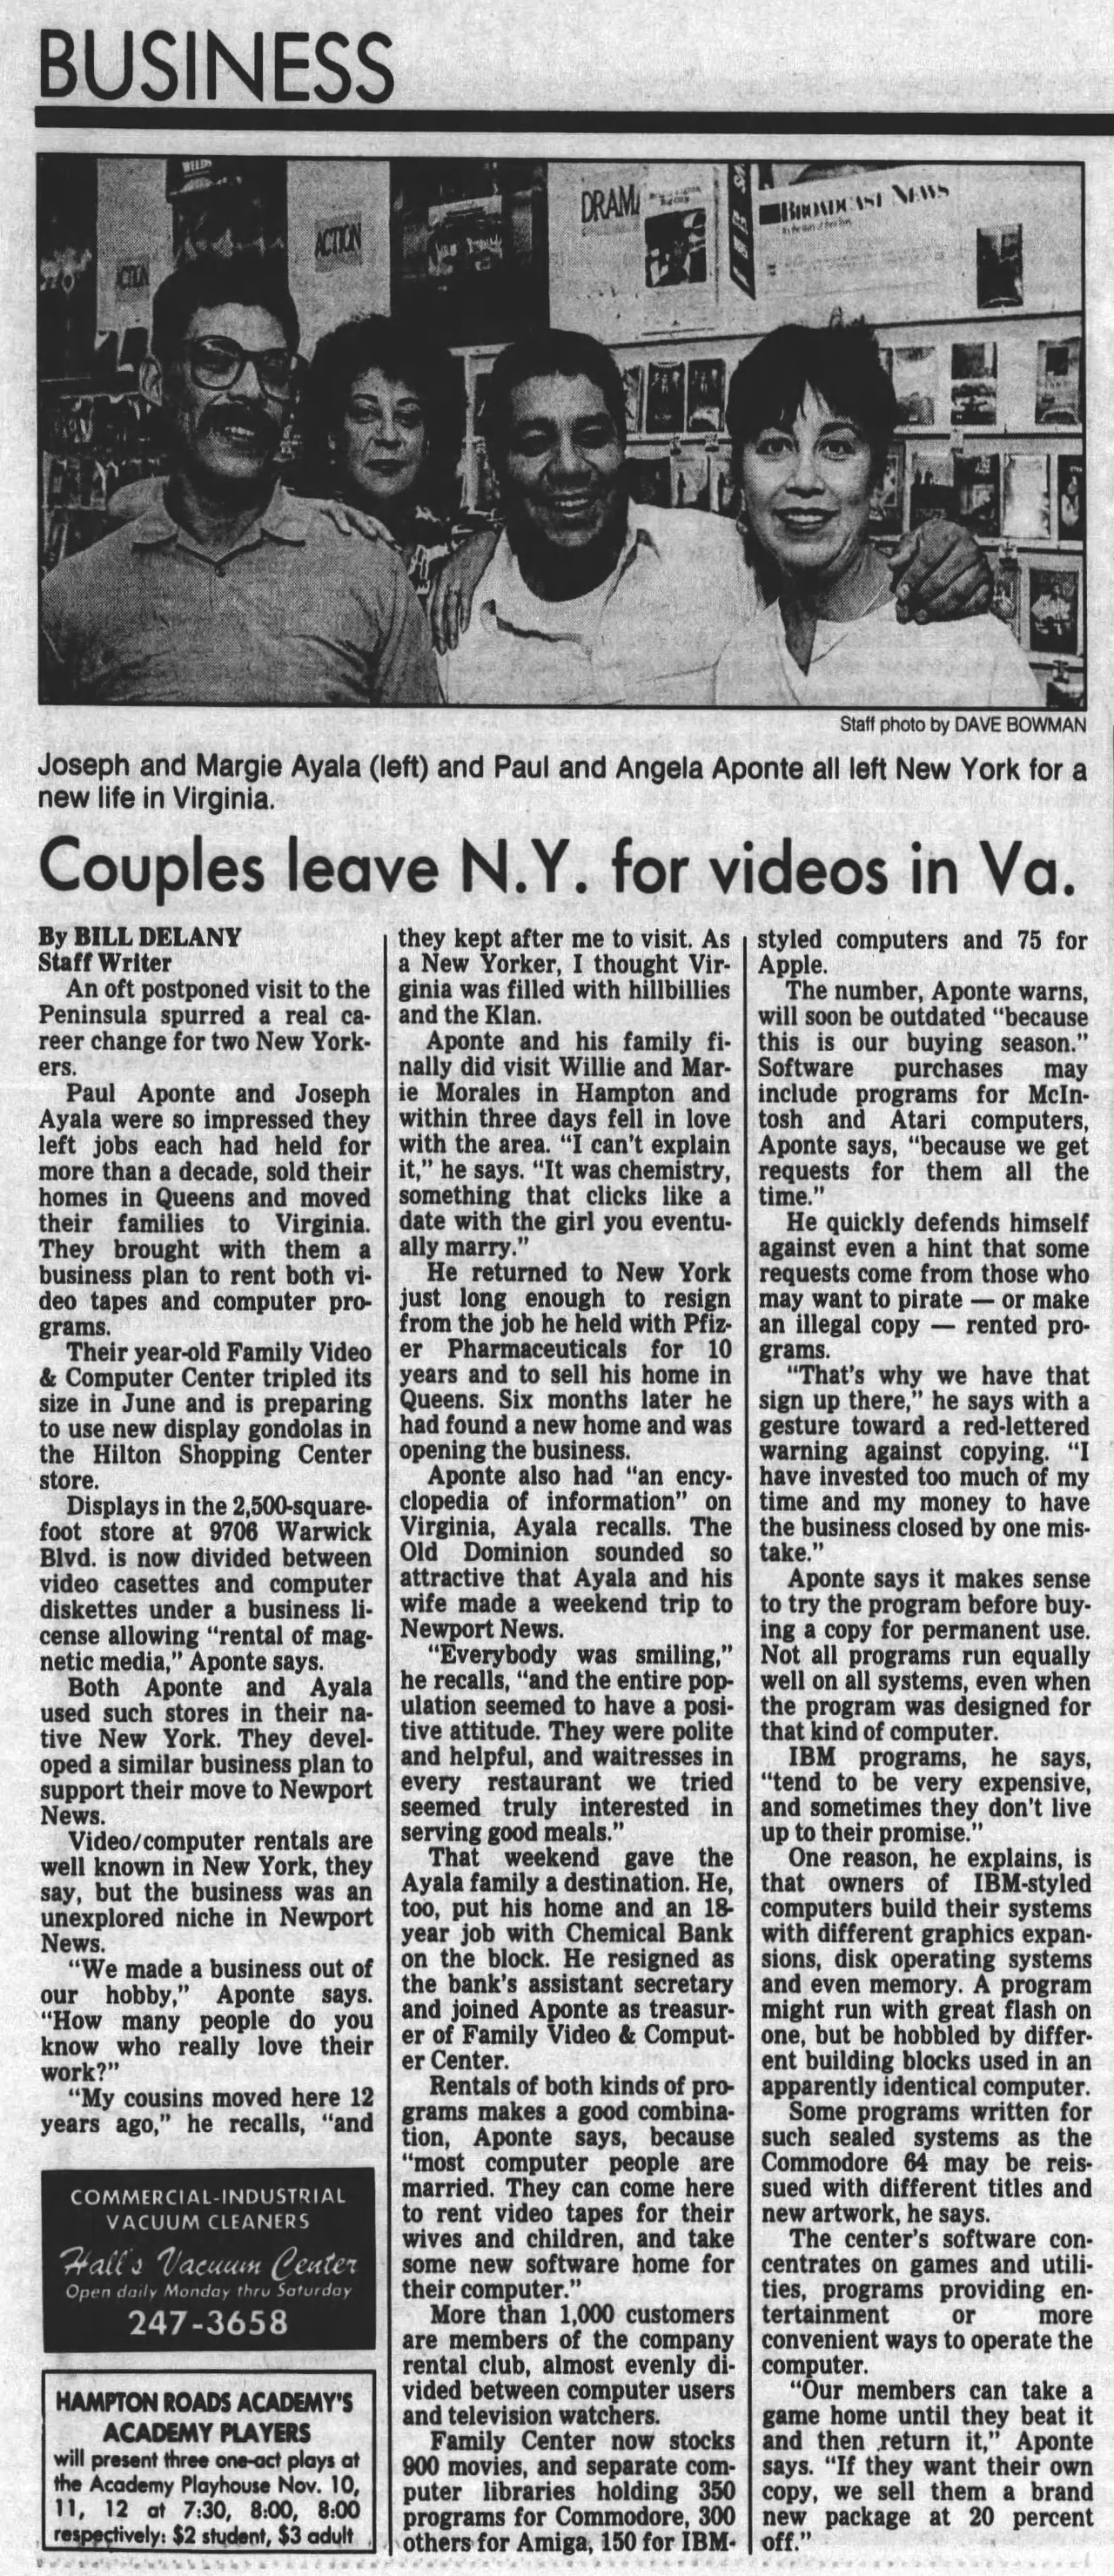 Daily Press writeup about the opening of Family Video & Computer Center (1988 scan)